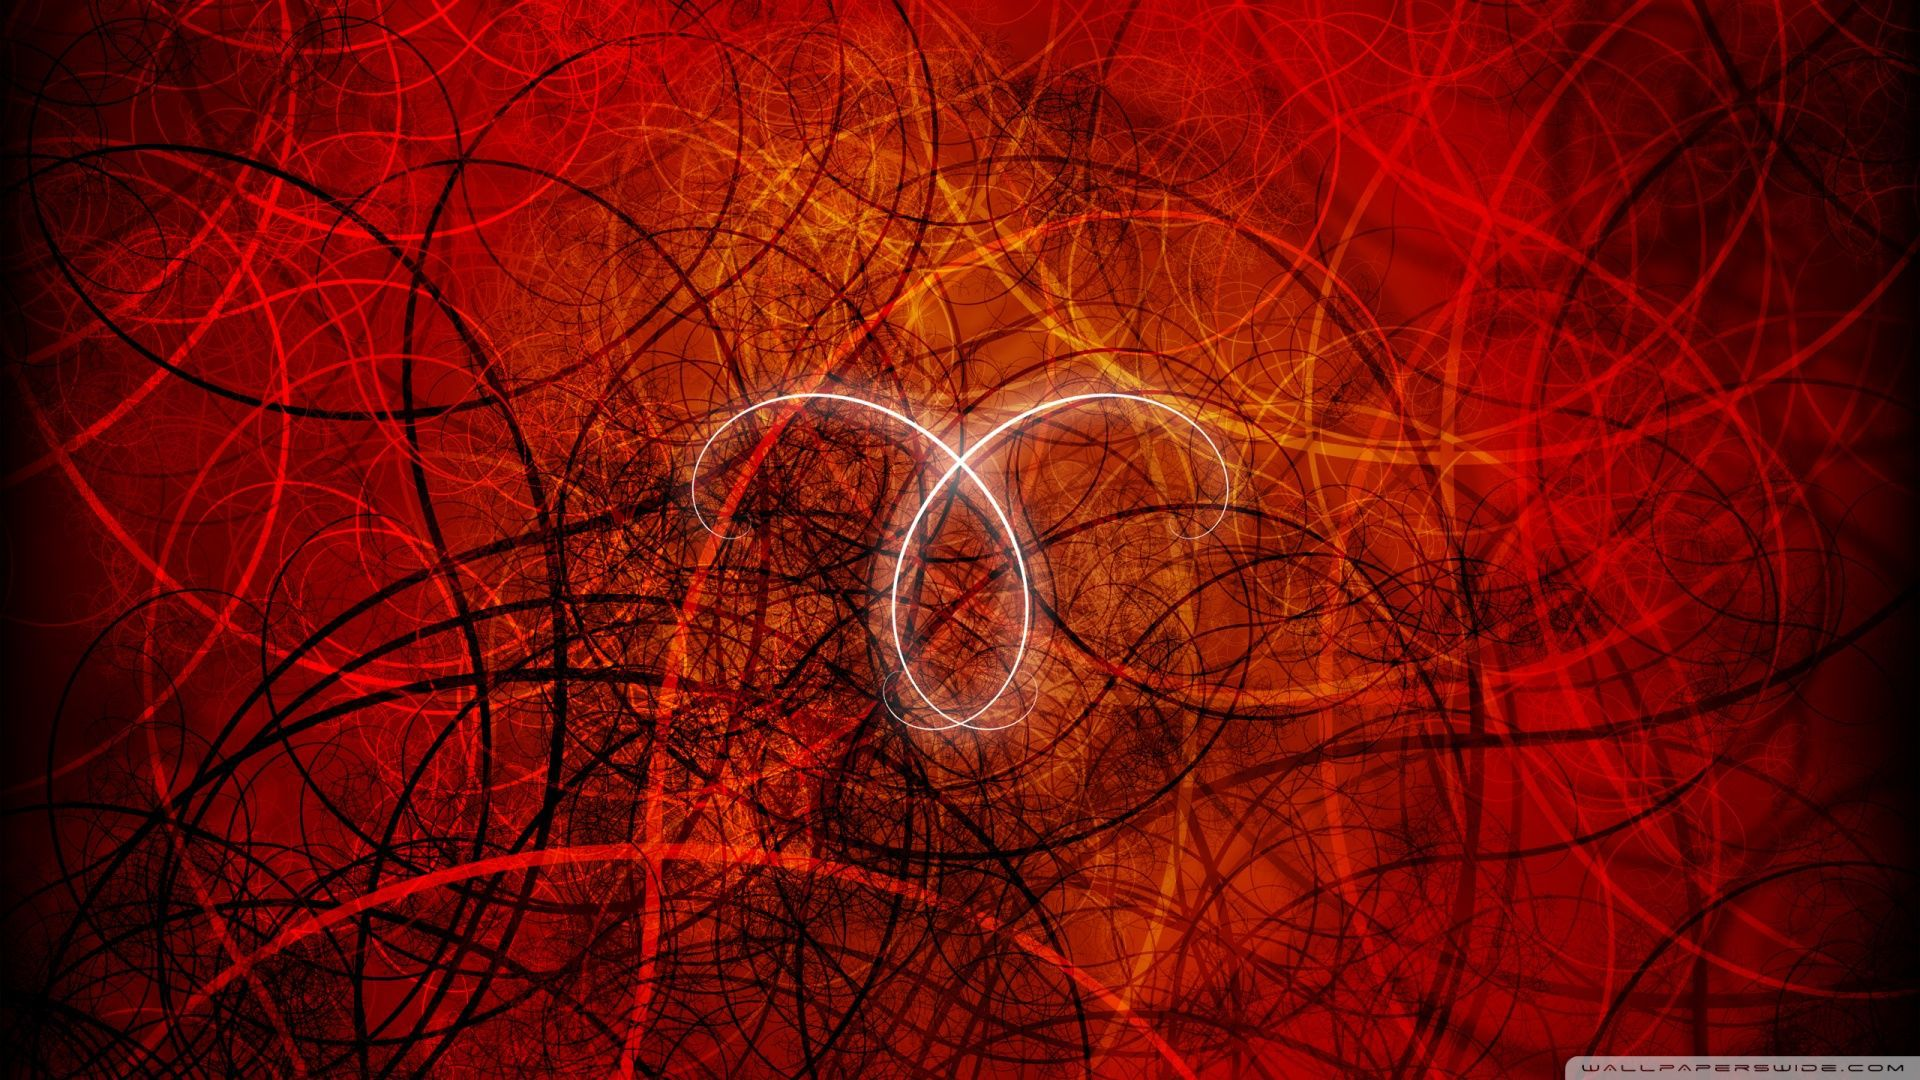 Aries sign in red wallpapers and images   wallpapers 1920x1080